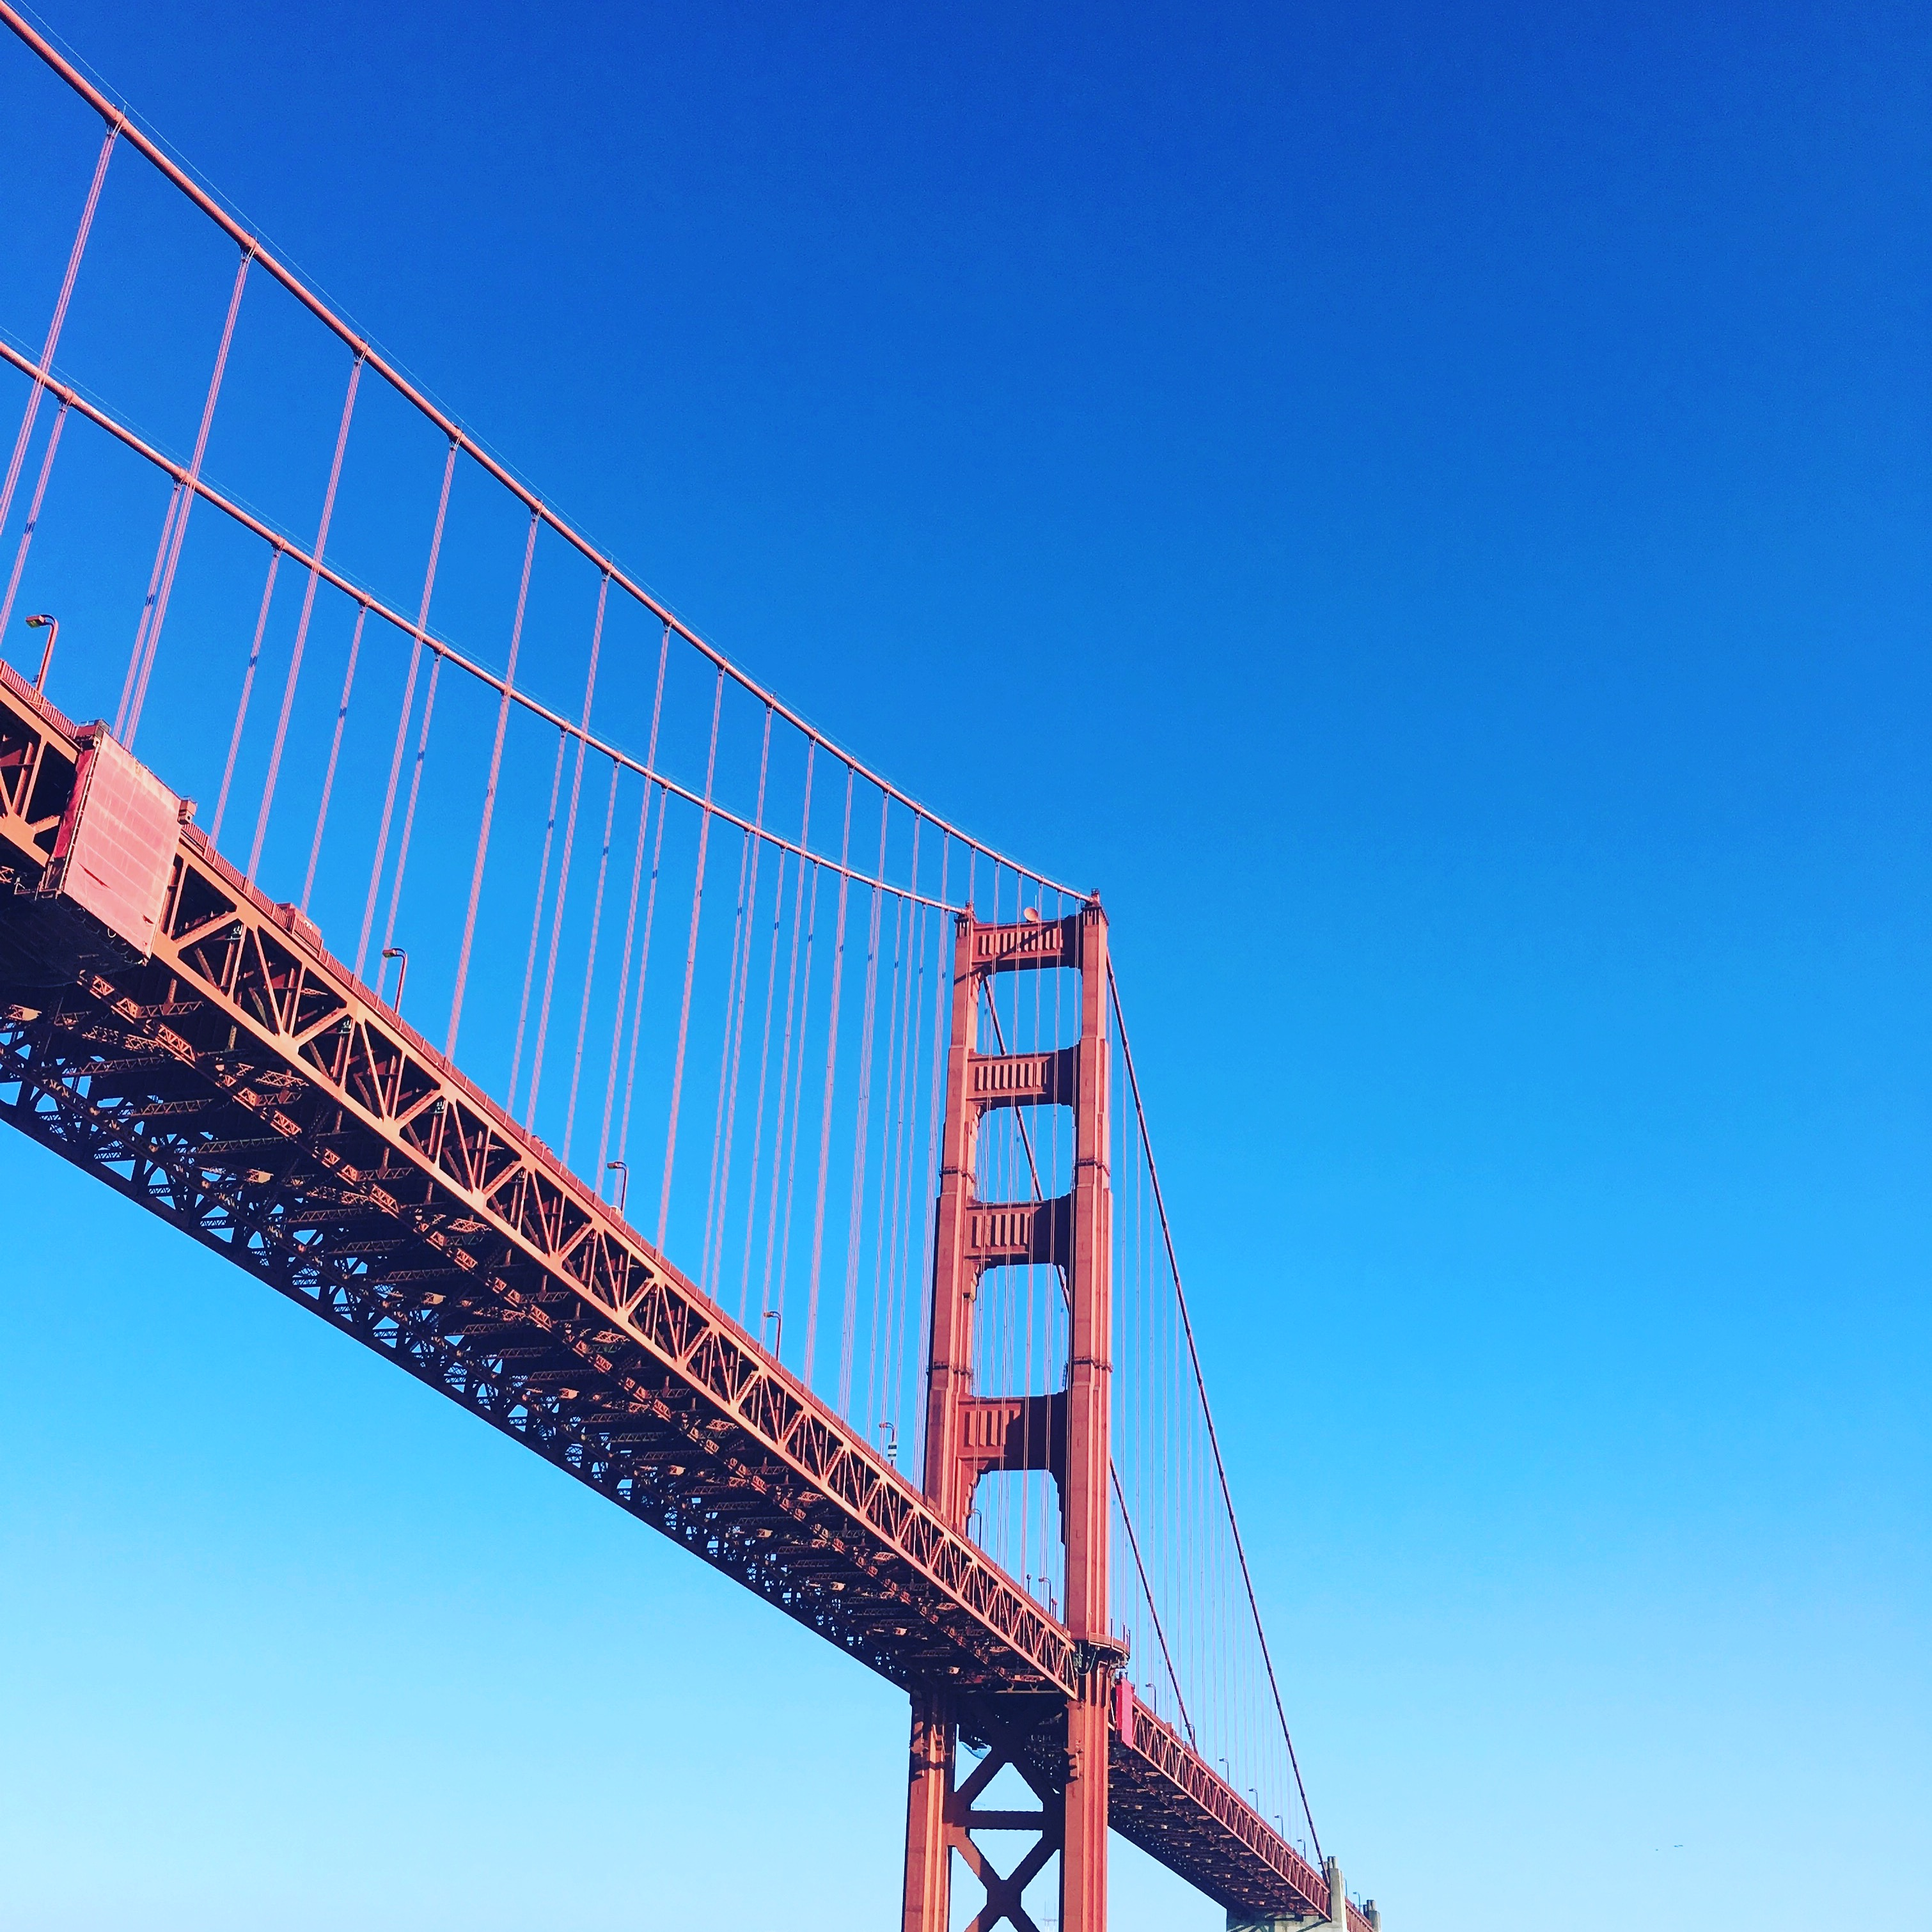 Three Days in San Francisco is all you need to have a wonderful time. There is so much to do in this great city and we have laid out a 3 day travel plan for you.